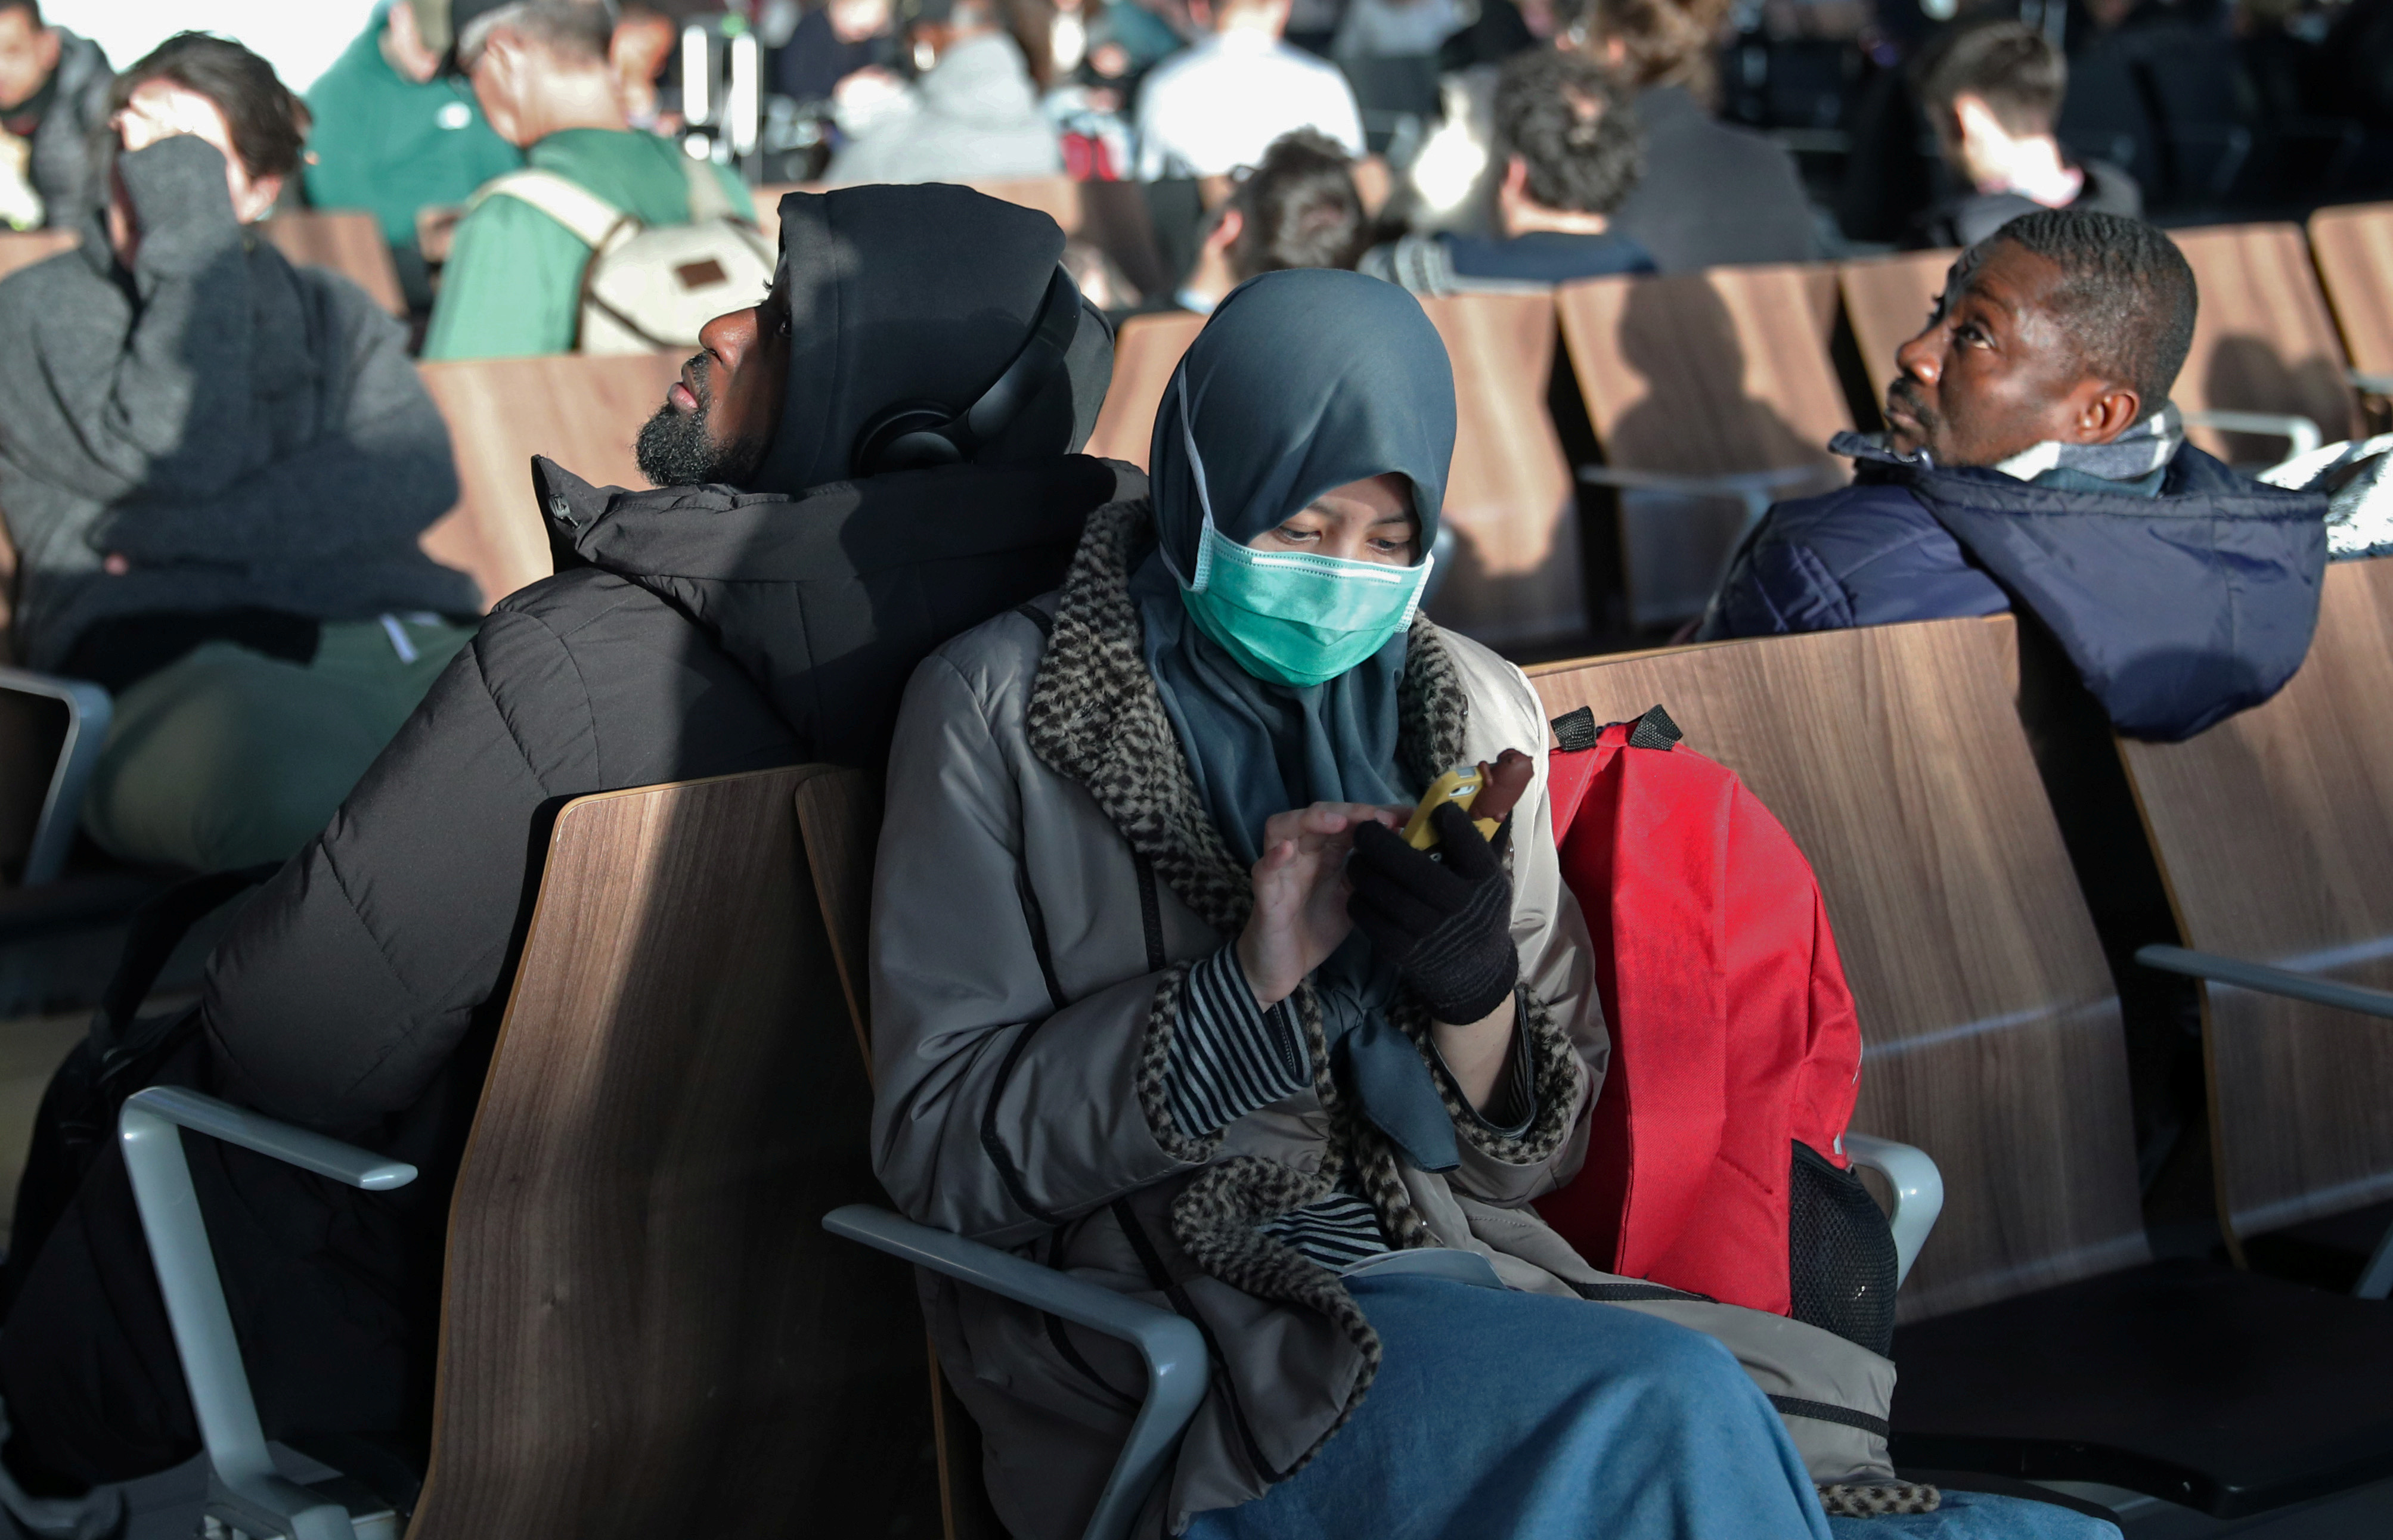 A woman wears a surgical mask as she sits in Terminal 5 at Heathrow Airport in London, Britain March 6, 2020. REUTERS/Hannah McKay - RC28EF9M4USC